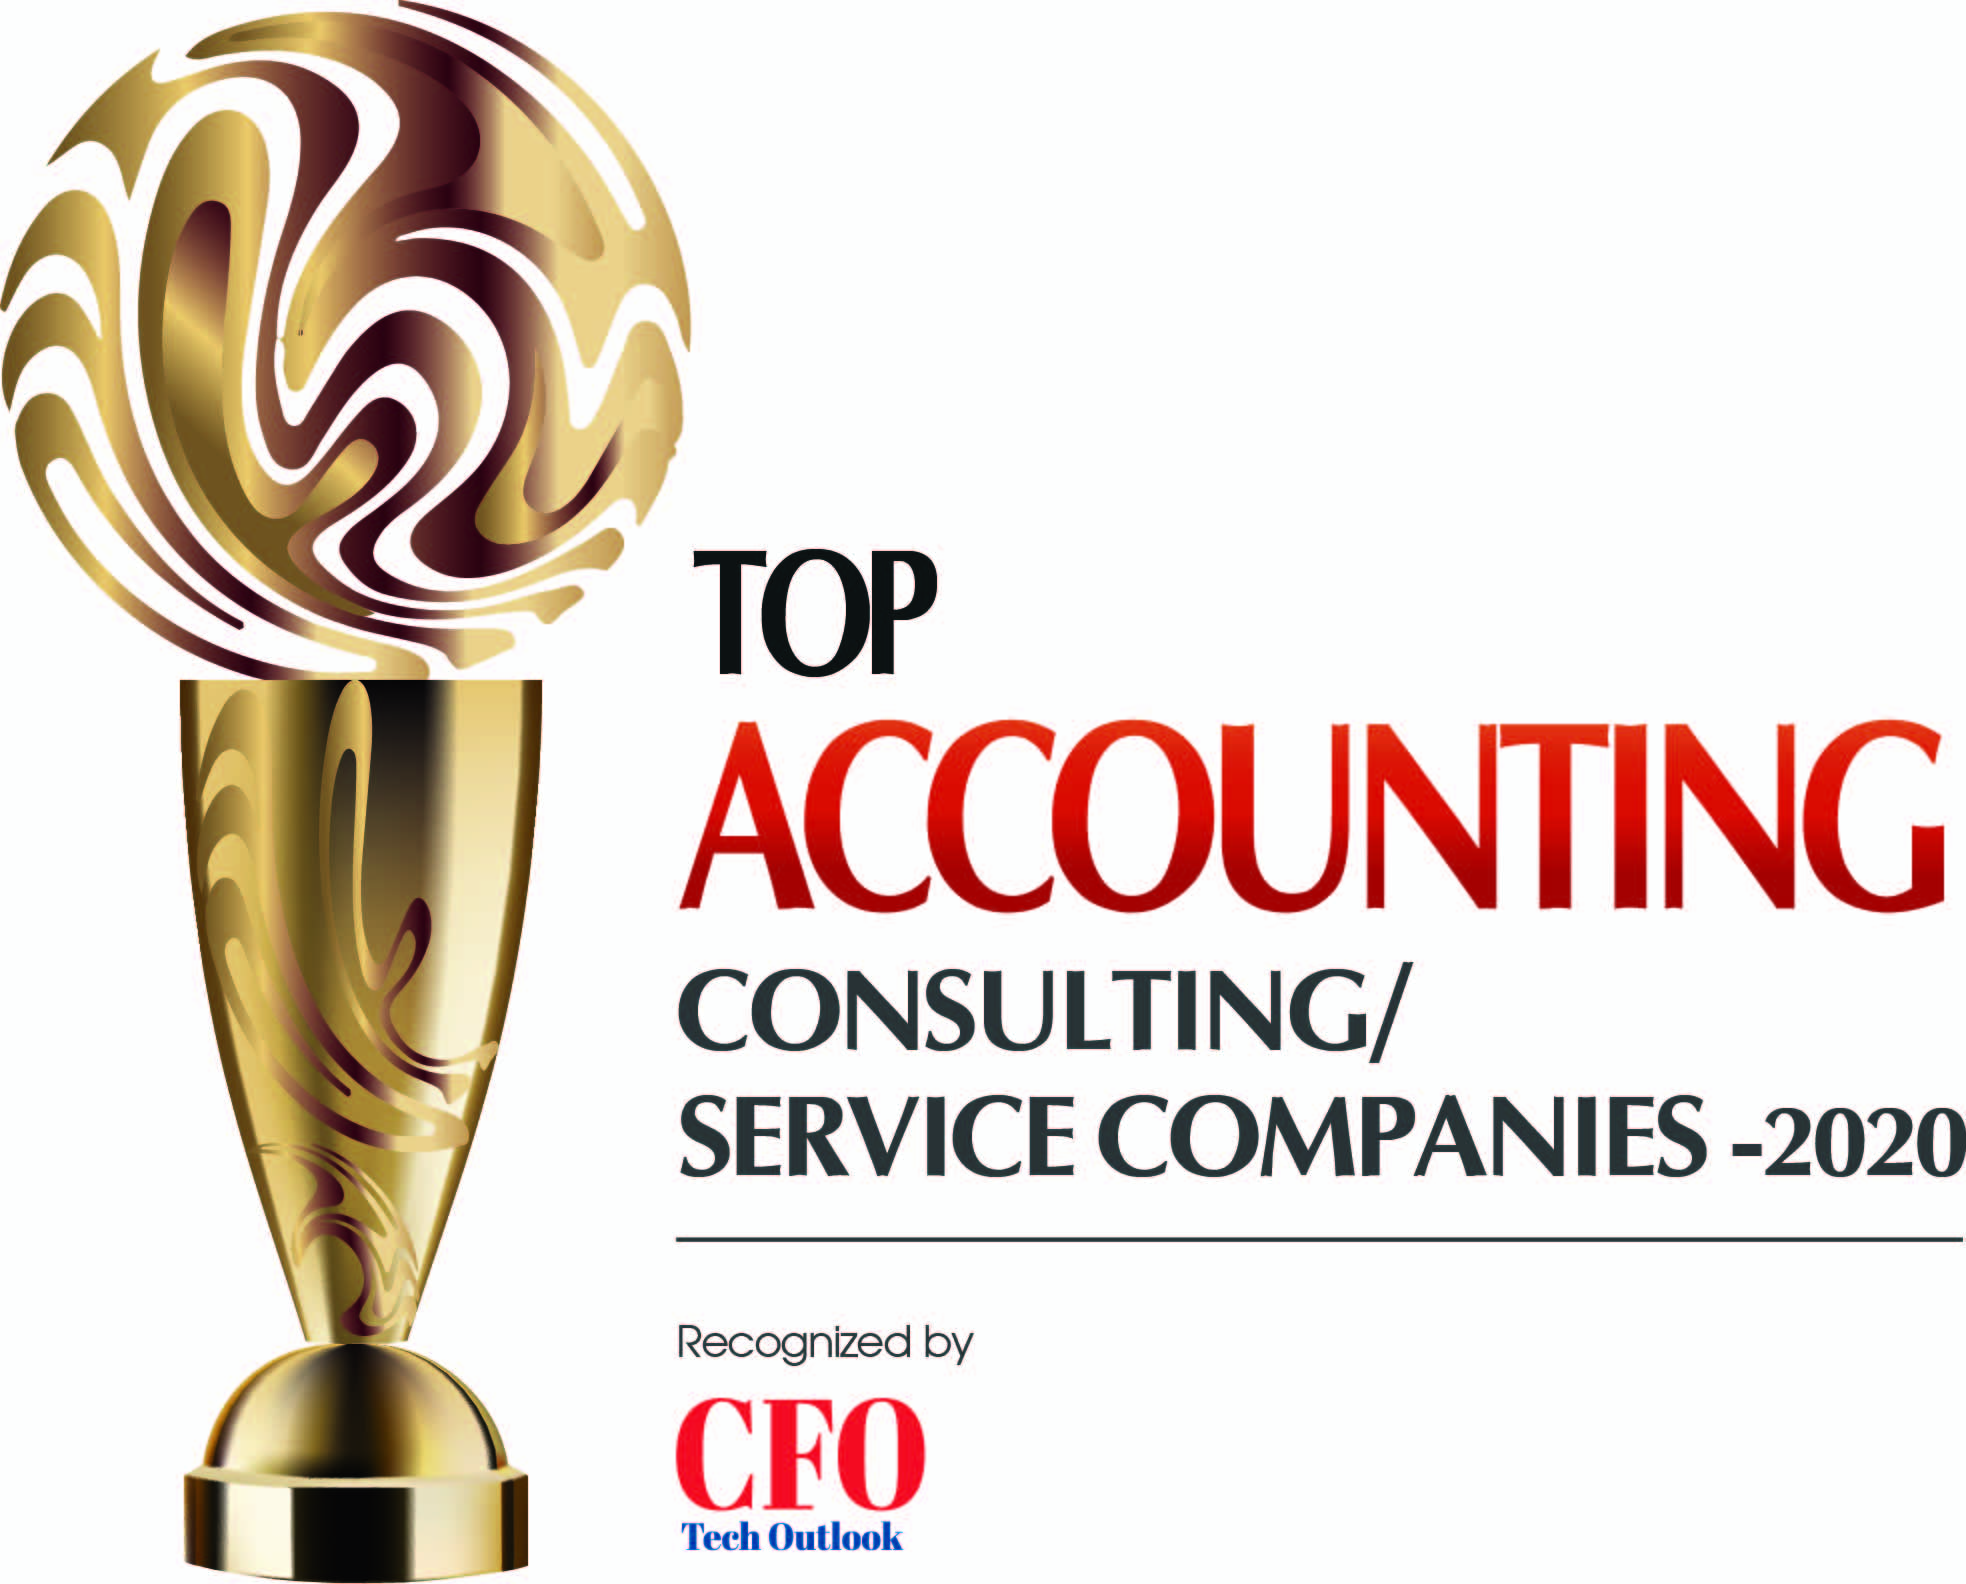 Top 10 Accounting Consulting/Service Companies - 2020